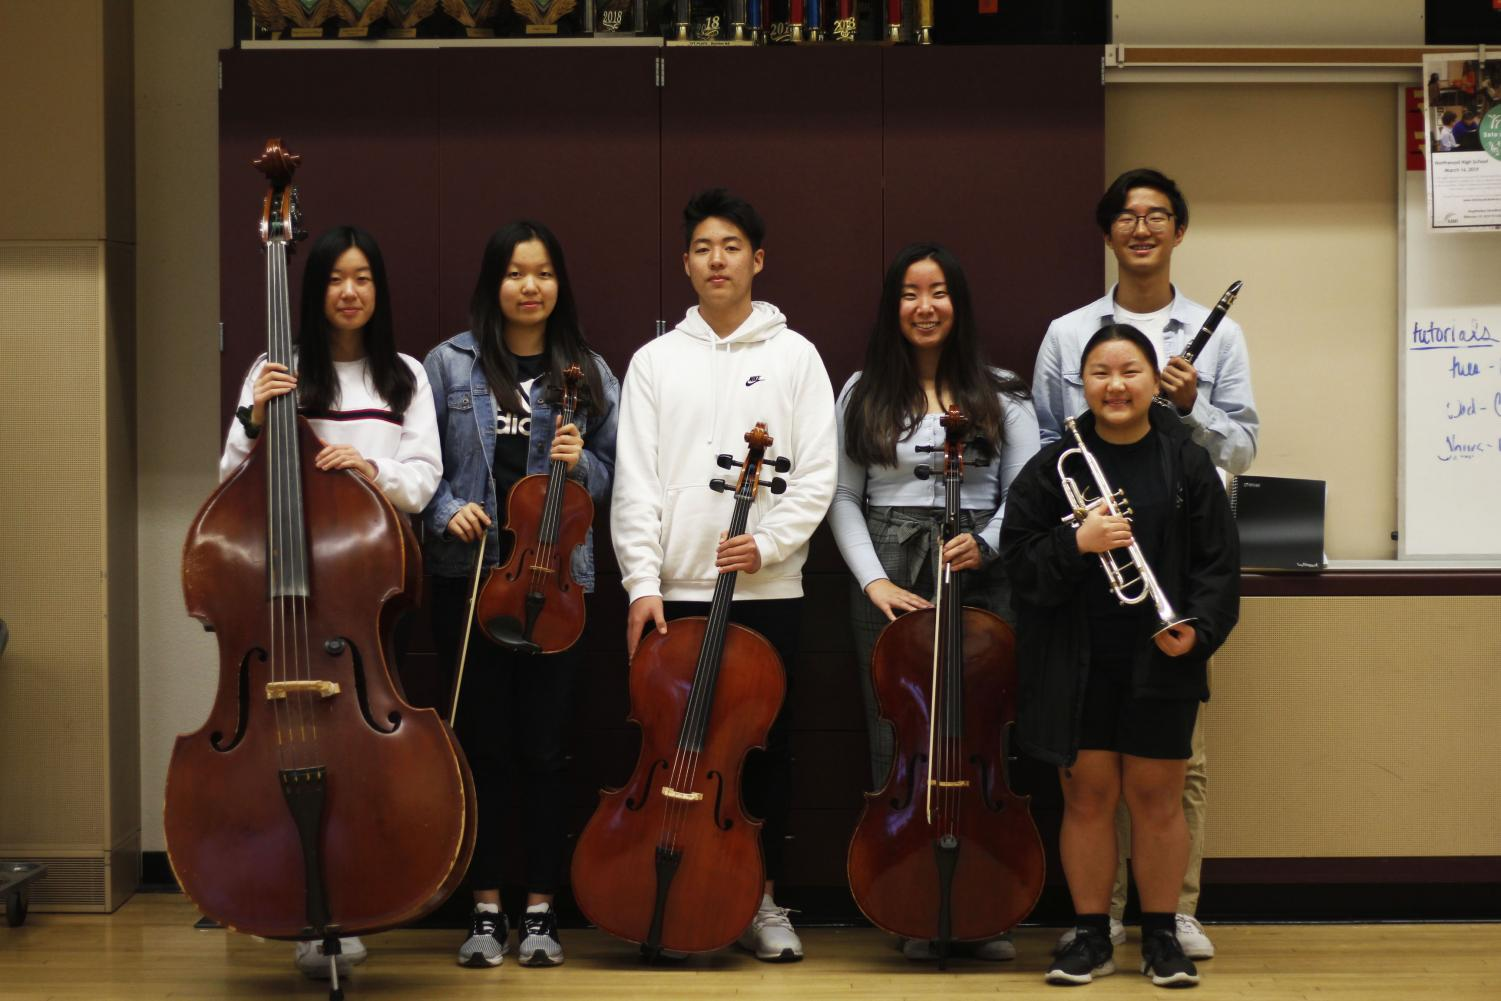 Juniors Megan Lu, Claire Kim, Eric Kim, Allison Hu, Justine Sato and Jay Hong pose with their instruments